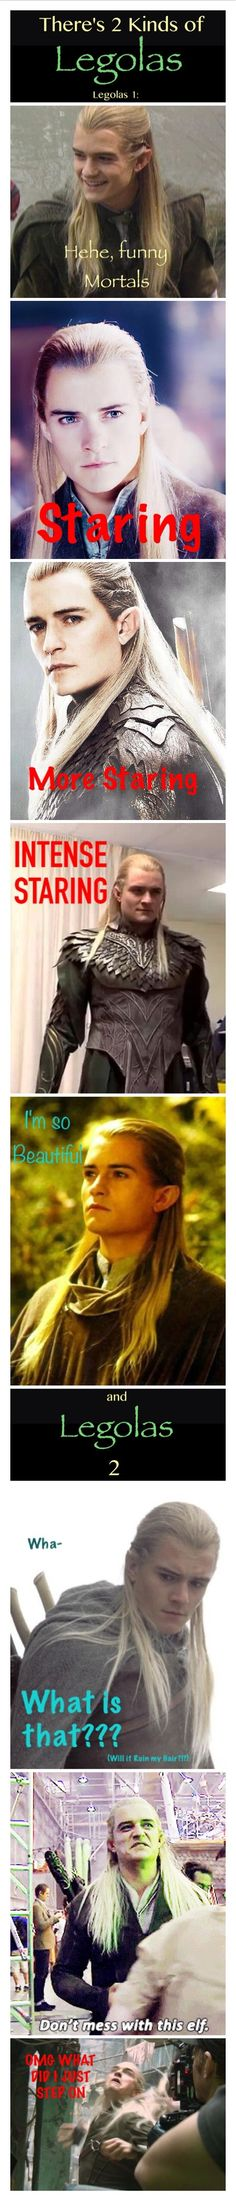 I just have to apologize to Orlando Bloom. I feel slightly evil pinning this. XD I'll go ahead and say that Legolas is one of my favorite characters, and I don't actually think of him as being a girly boy. (I also don't like him for looks, but simply because he's an interesting character.) ~ made by Samantha Morton /// LotR Legolas Humor Middle Earth funnies